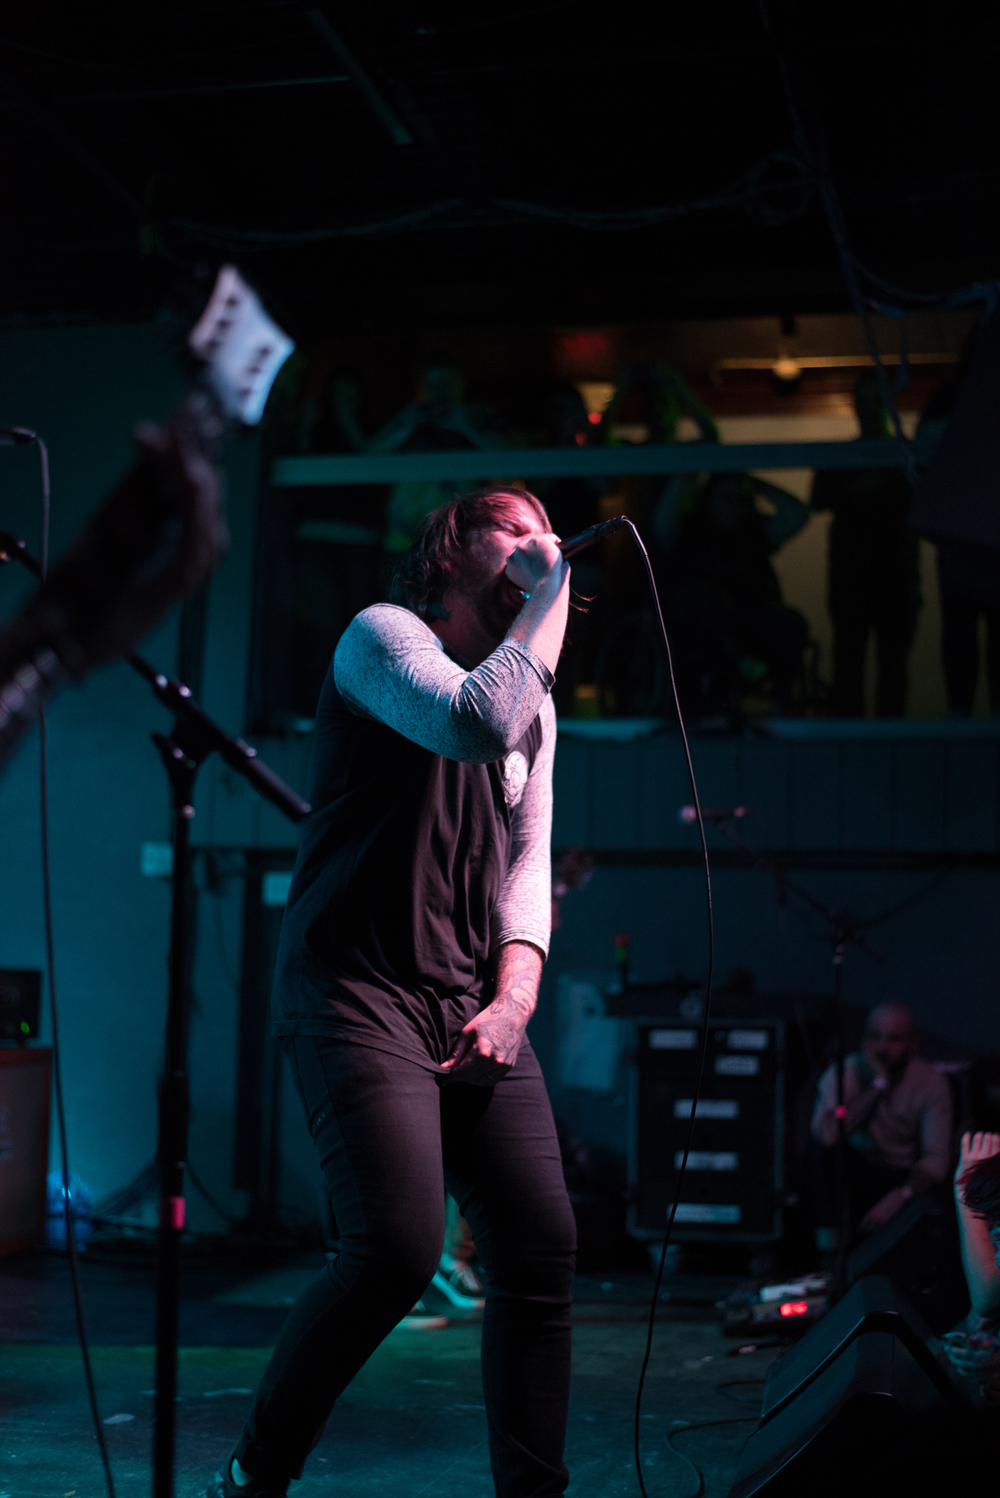 Beartooth - Greene Street Live - Concert Photographer